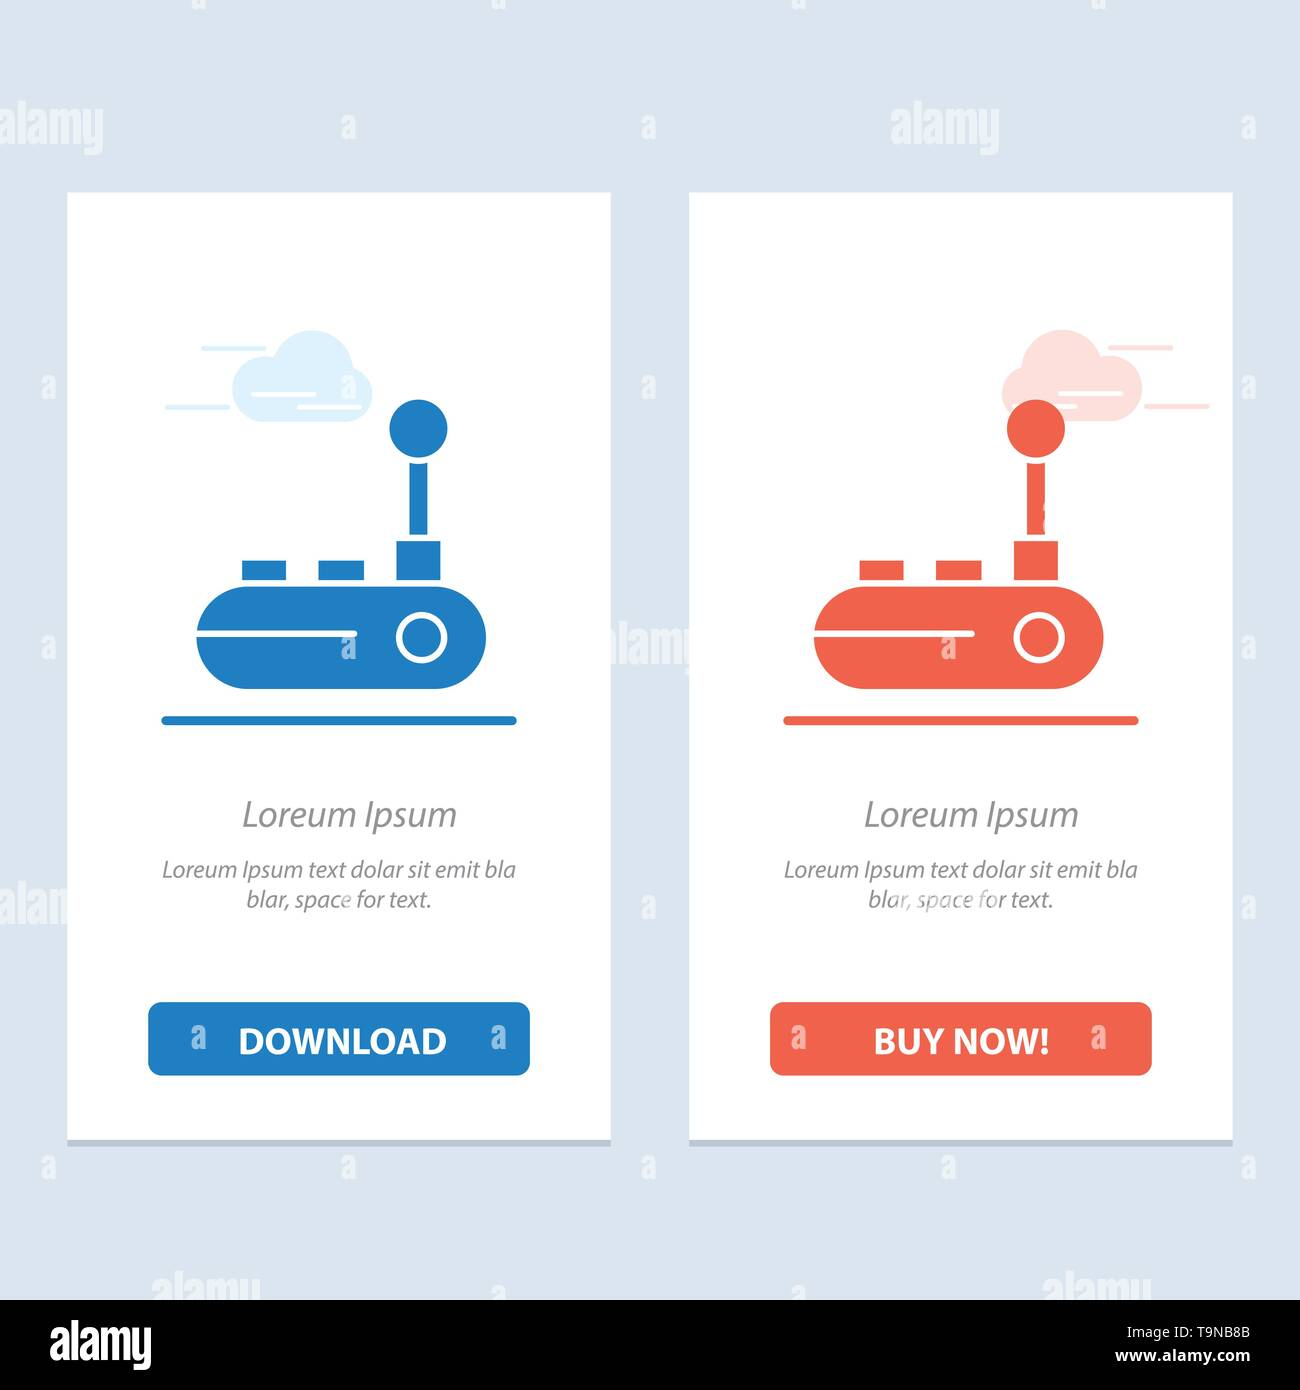 Controller, Joy Pad, Joy Stick, Joy pad  Blue and Red Download and Buy Now web Widget Card Template - Stock Image